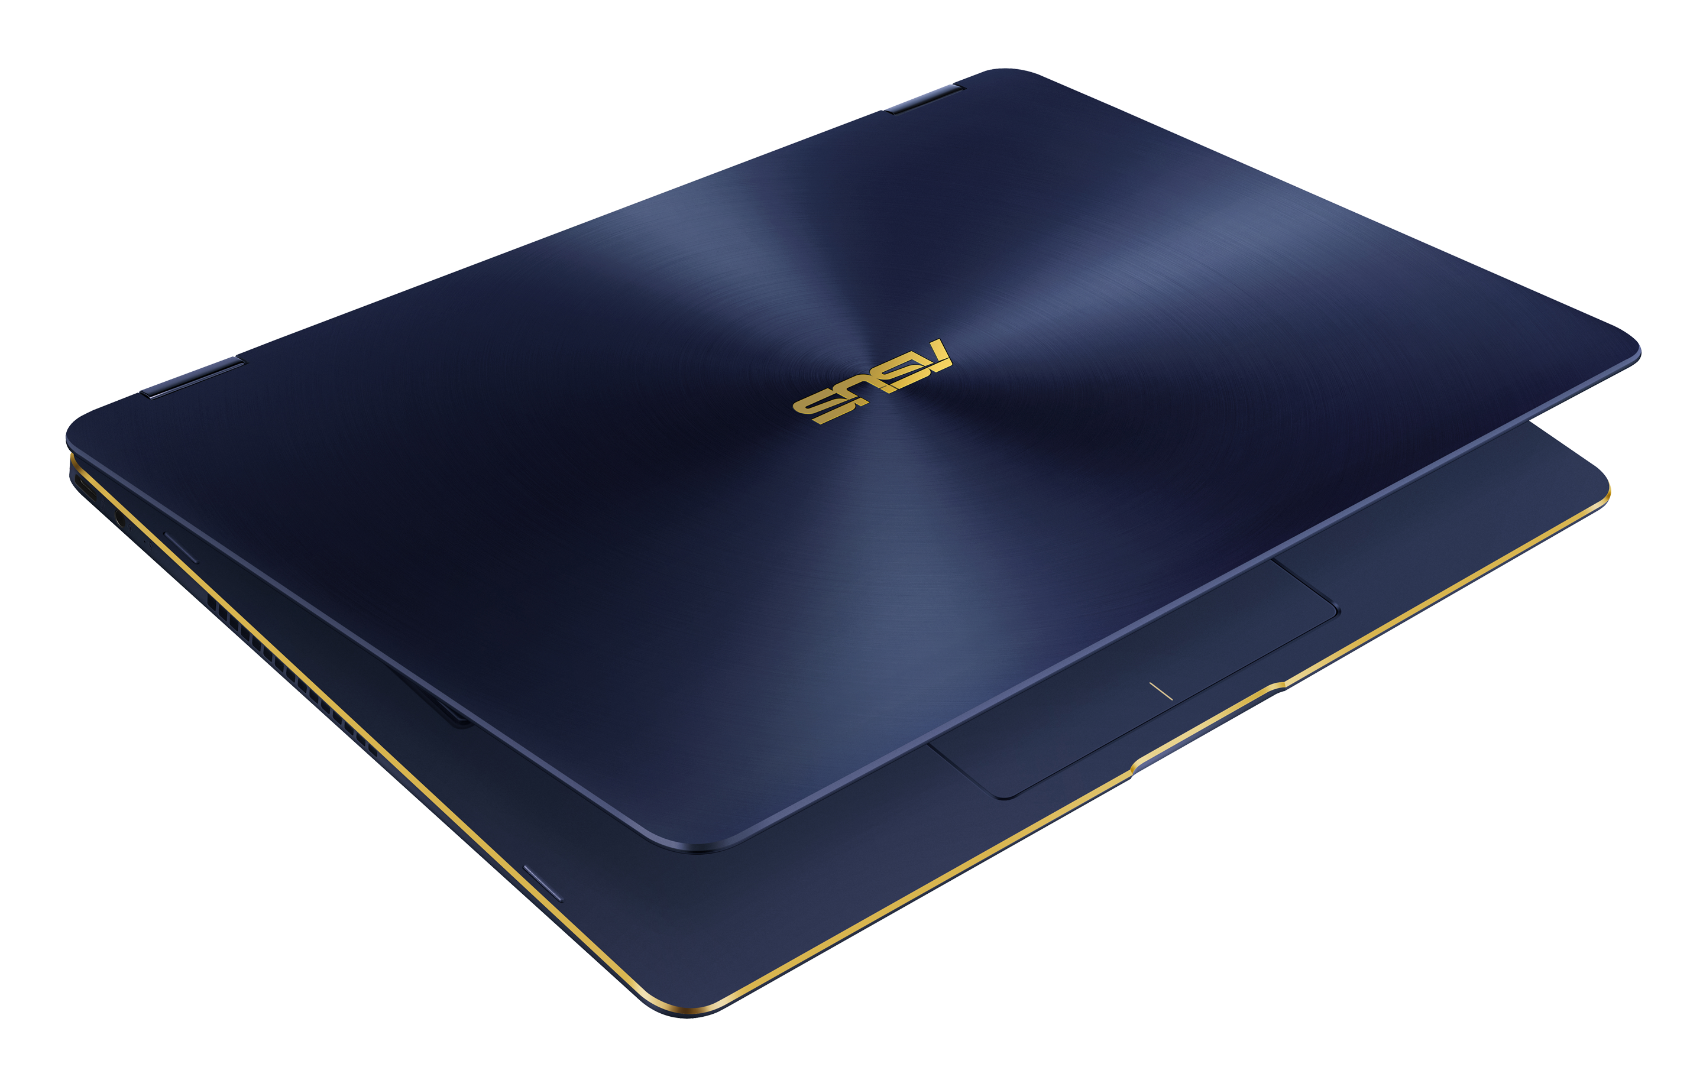 New ZenBook, VivoBook Laptops, Mixed Reality Headset, and More